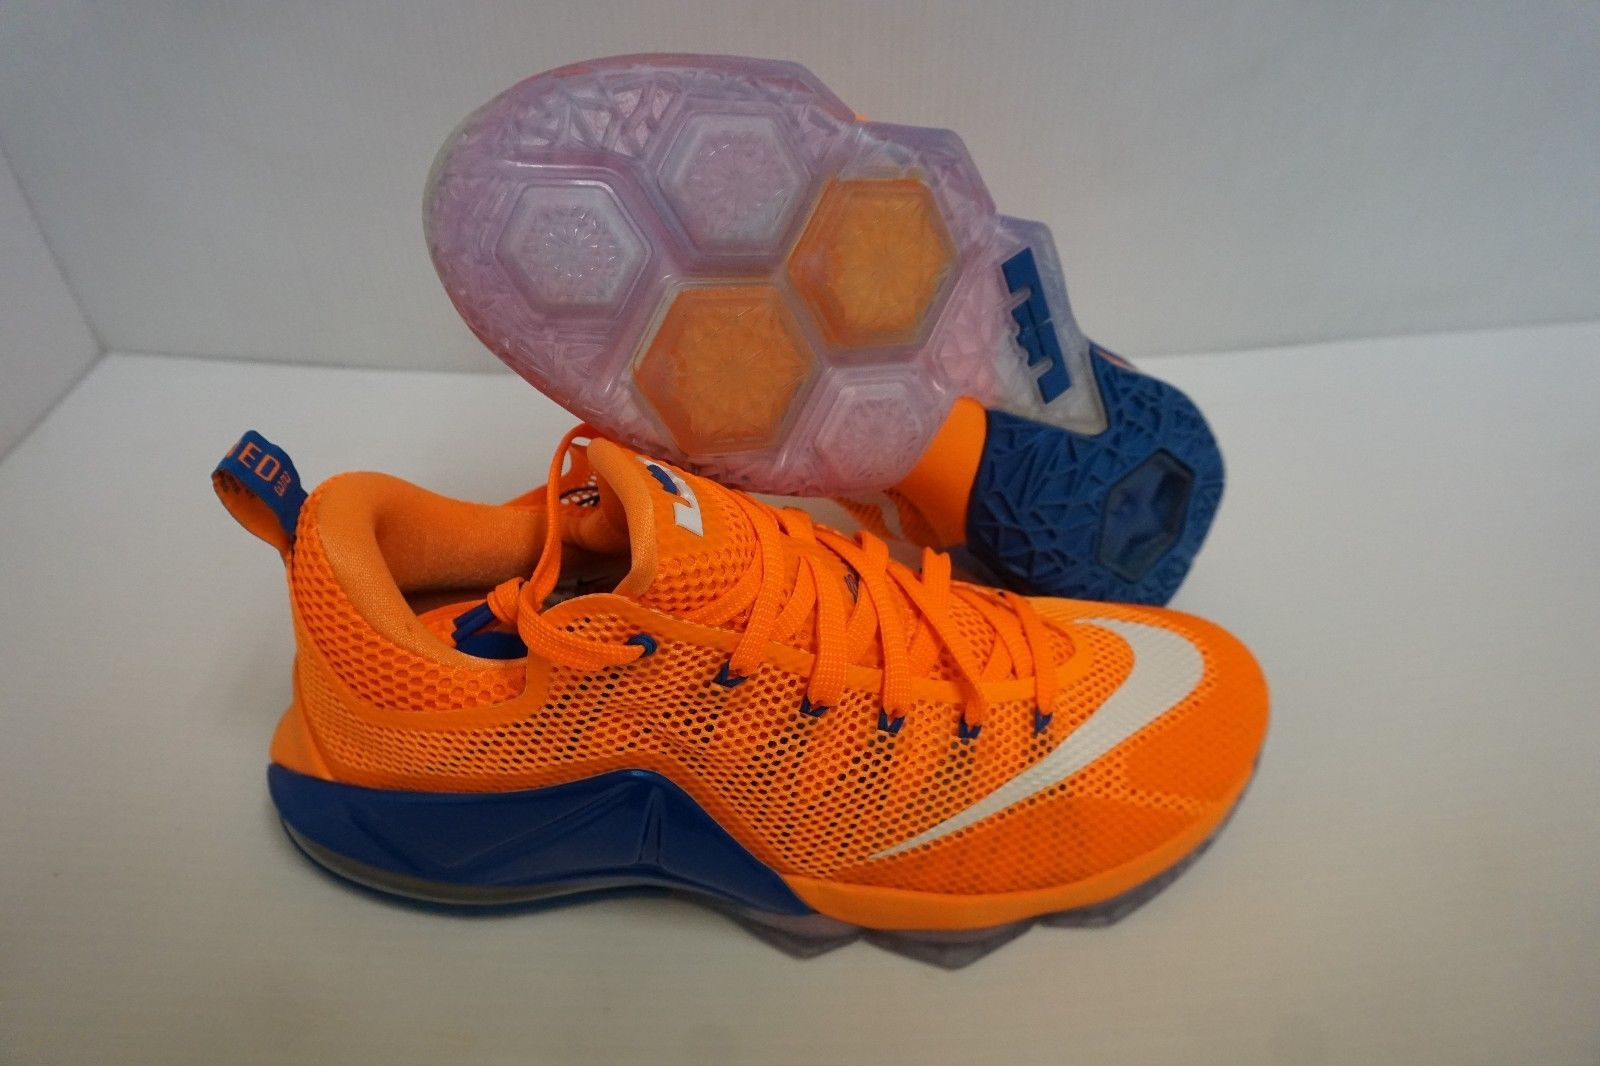 84c6800a7b98 Nike Lebron xii low basketball shoes bright and 50 similar items. 57